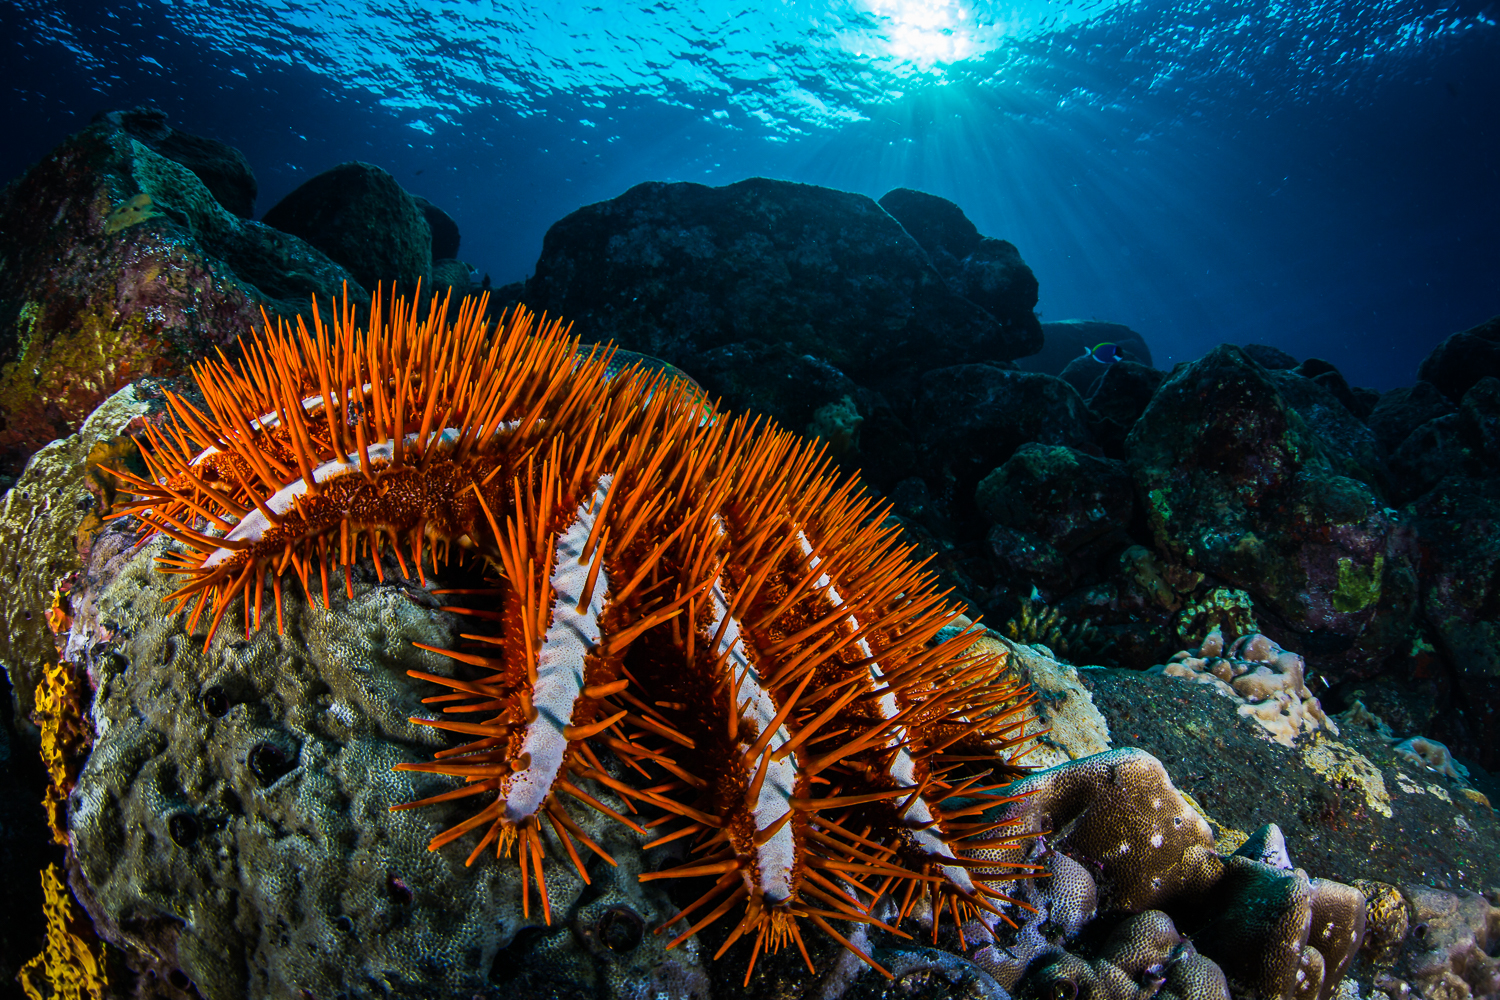 Crown of Thorns (Acanthaster planci), Barren Island, Andaman Sea, India